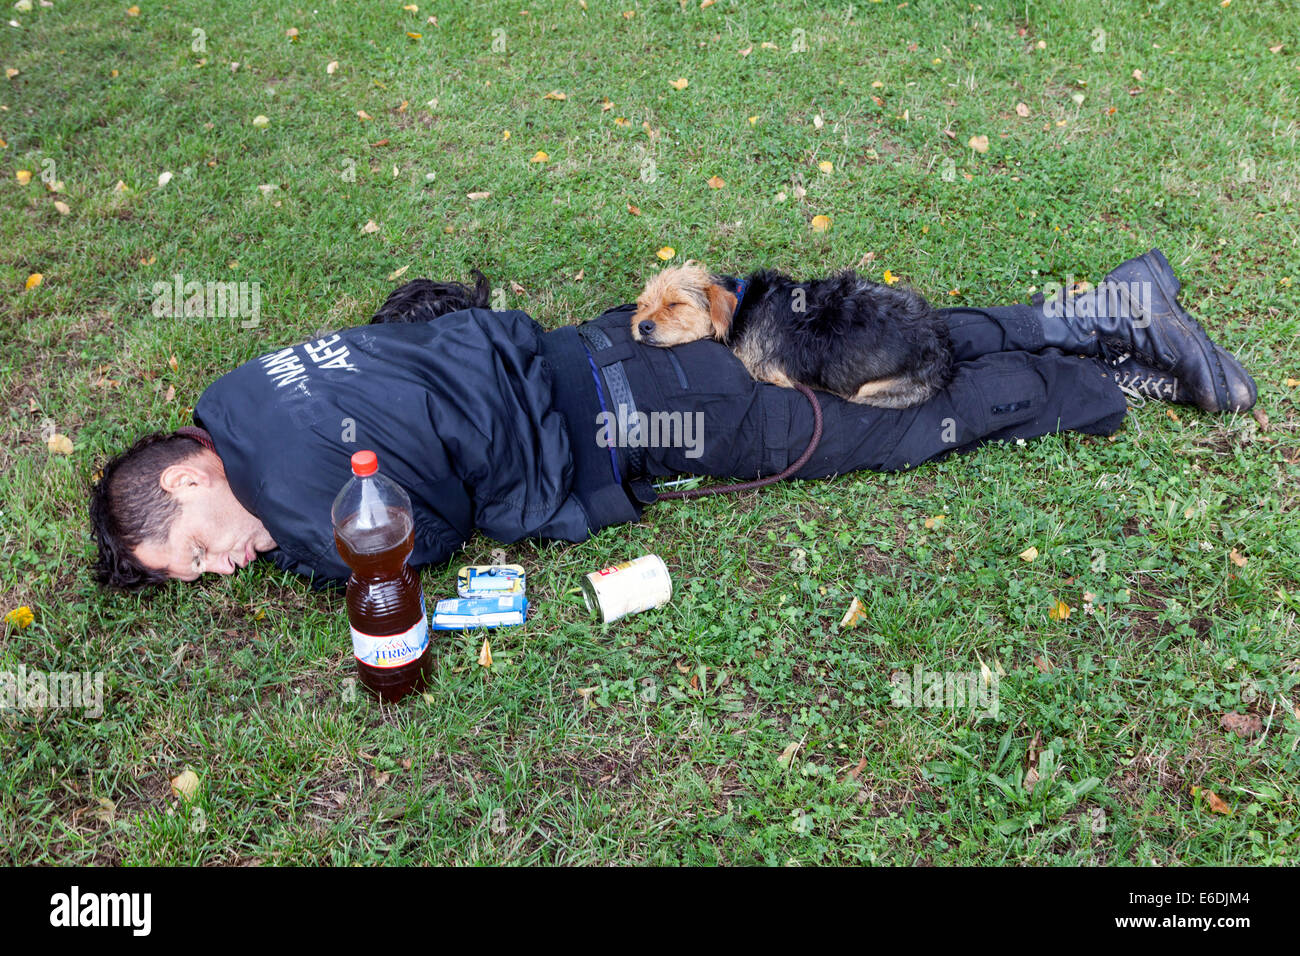 sleeping couple, a man and his dog on the grass, comic situations about friendship, Prague, Czech Republic - Stock Image